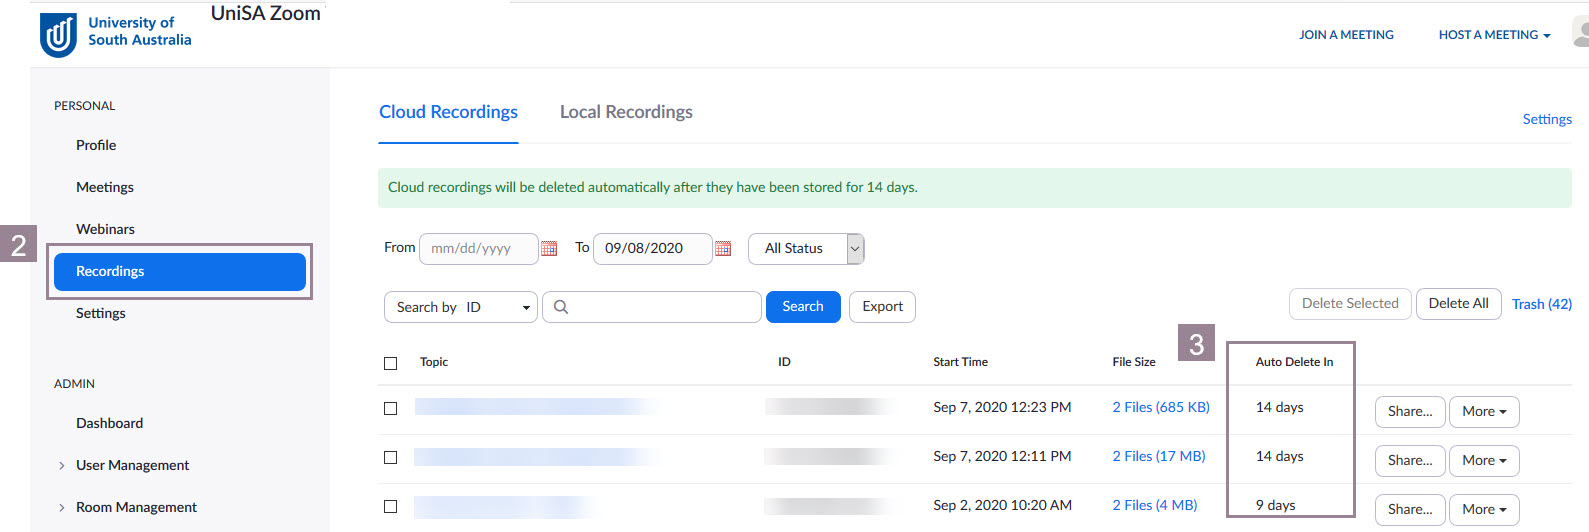 Image of Zoom Cloud Recordings screen with Recordings highlighted.